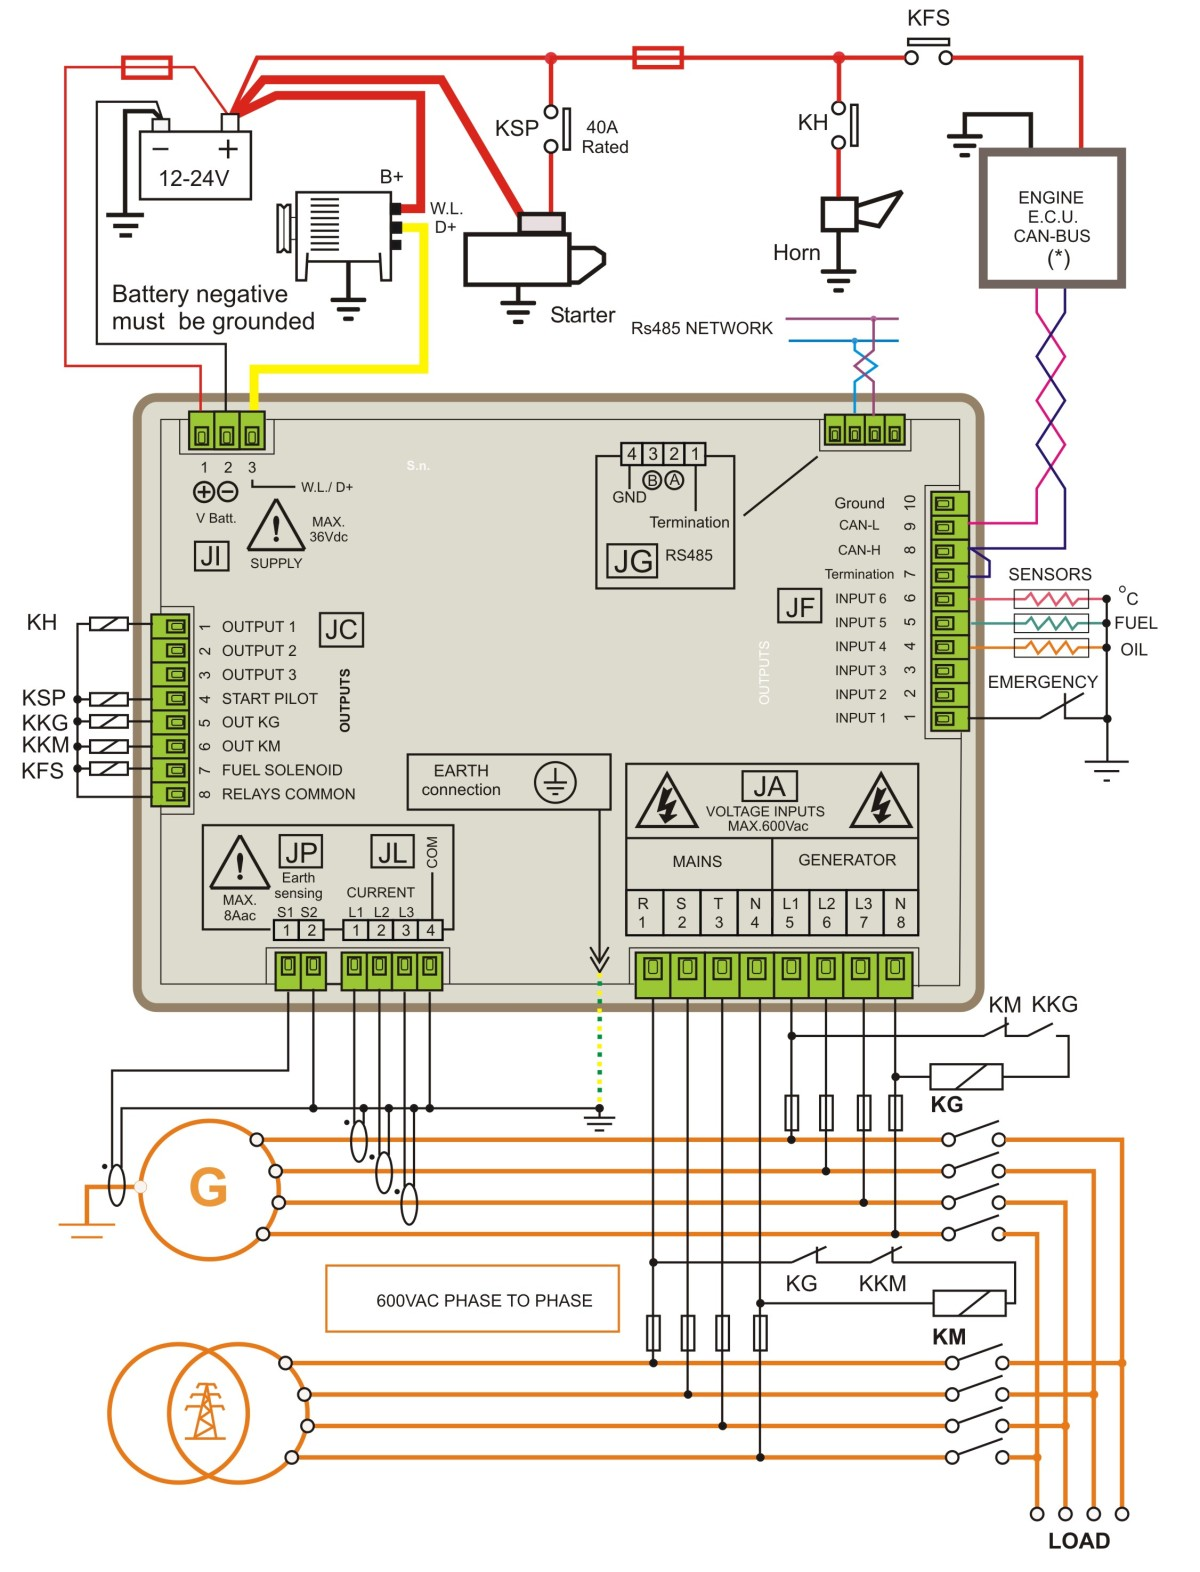 stamford ac generator wiring diagram wiring diagram and hernes ac generator wiring diagram image about